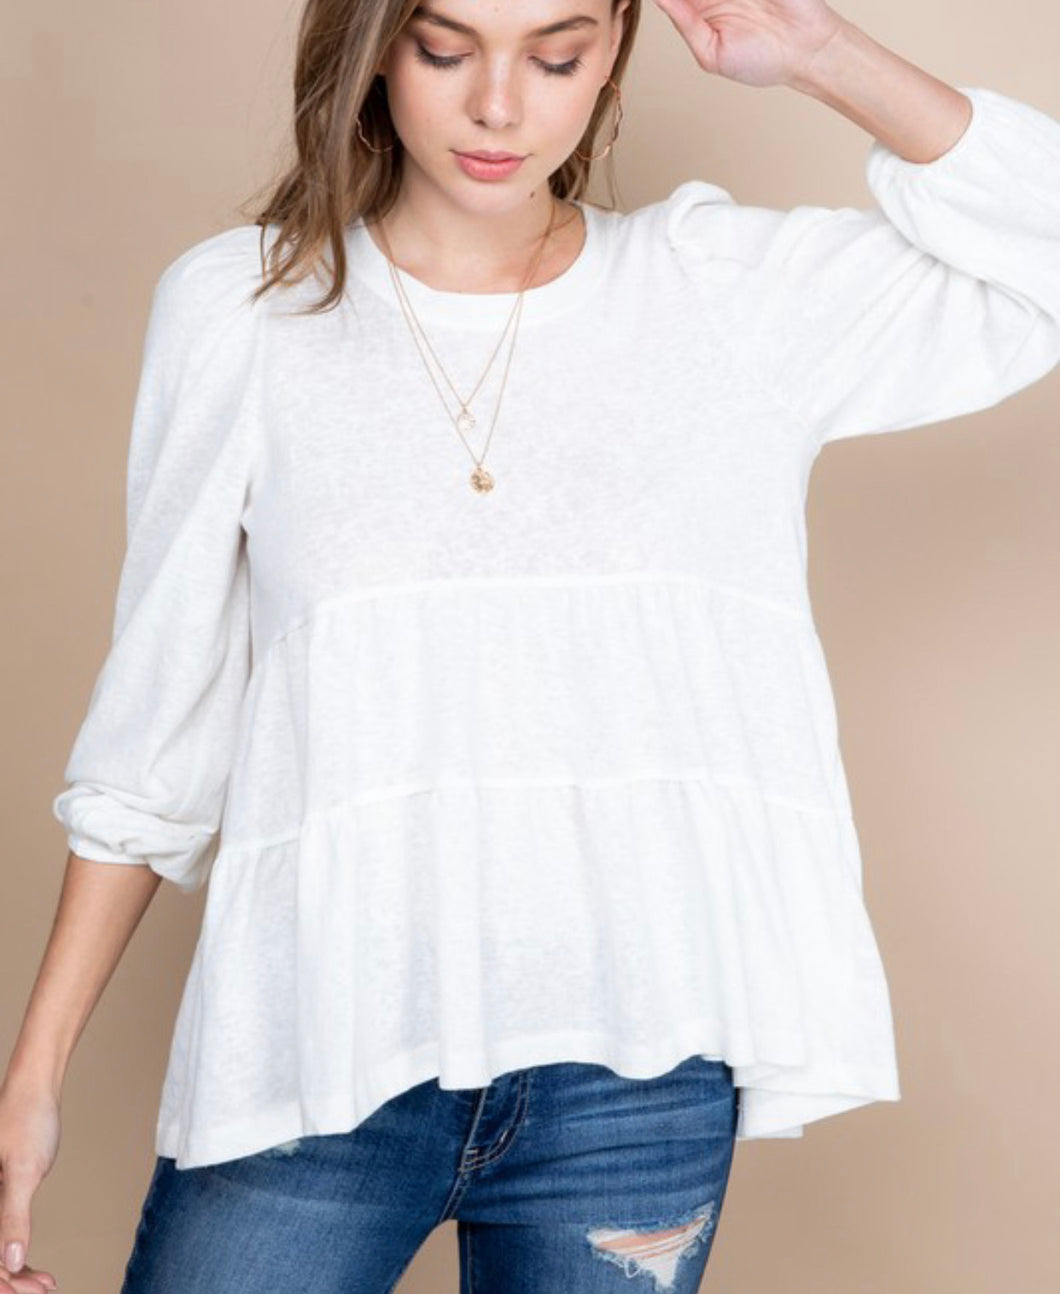 White Baby Doll top